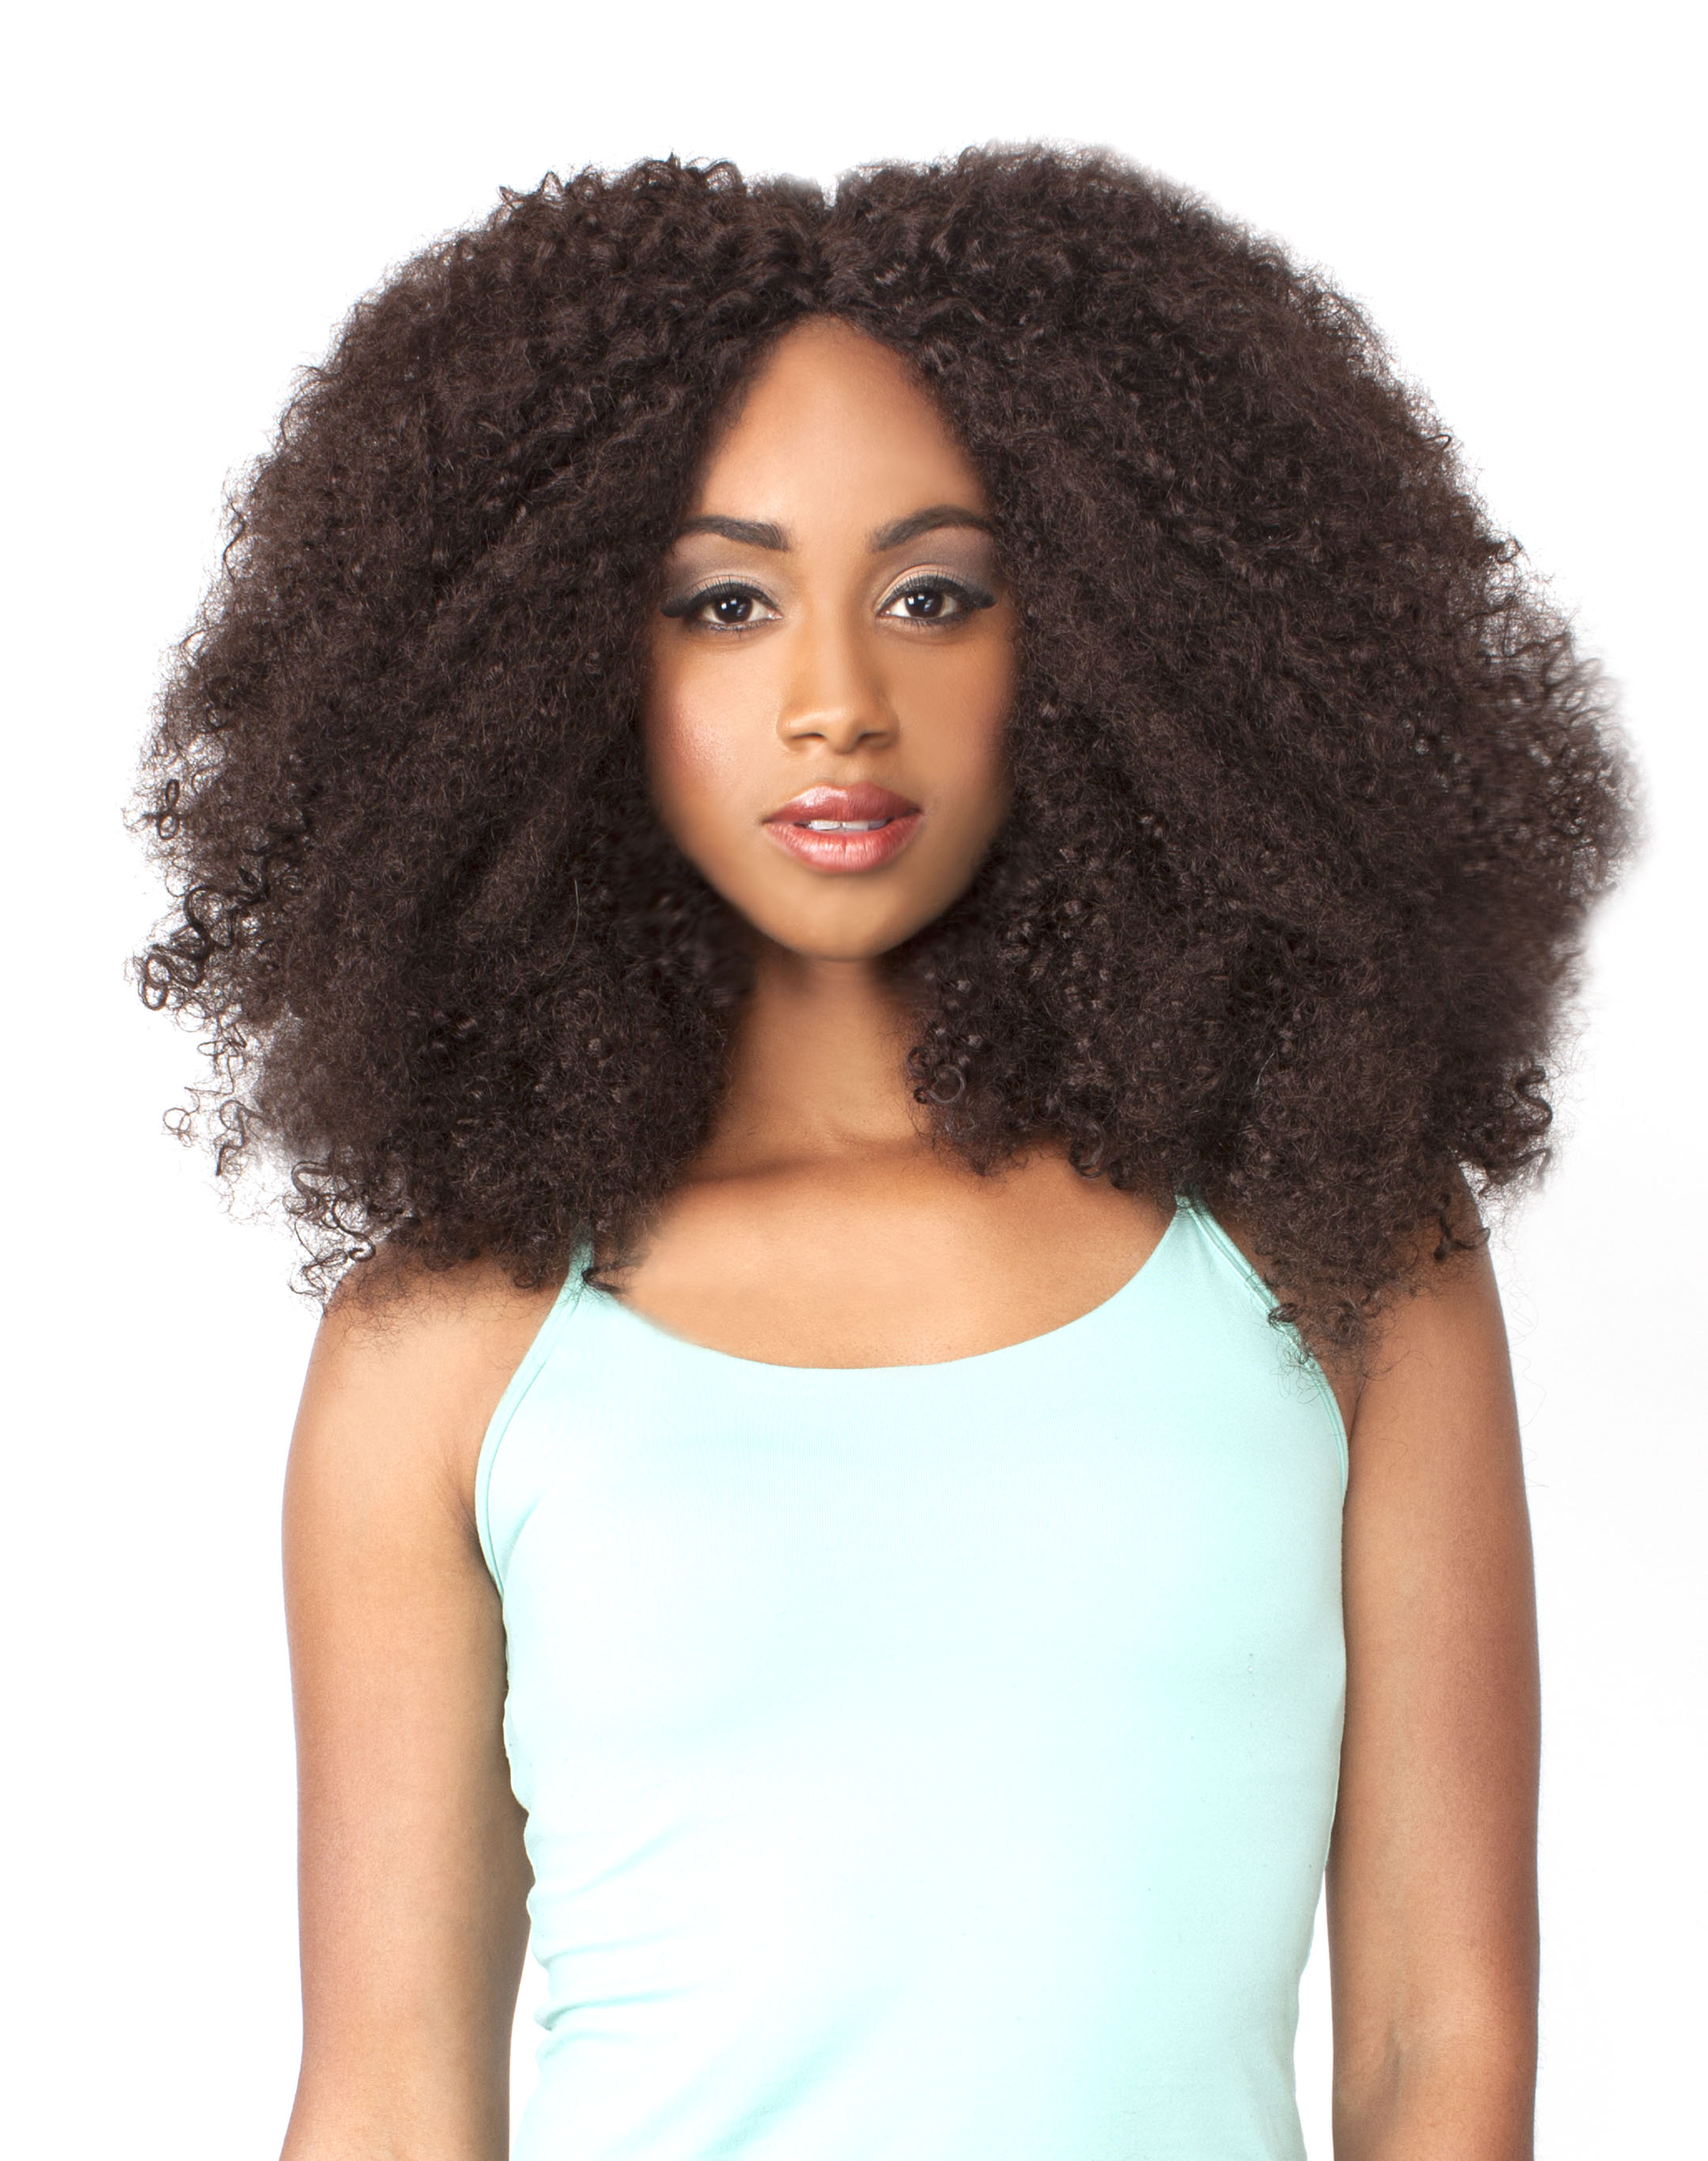 Human Hair Afro Wigs Uk - Wig Ponytail f710d4770f57